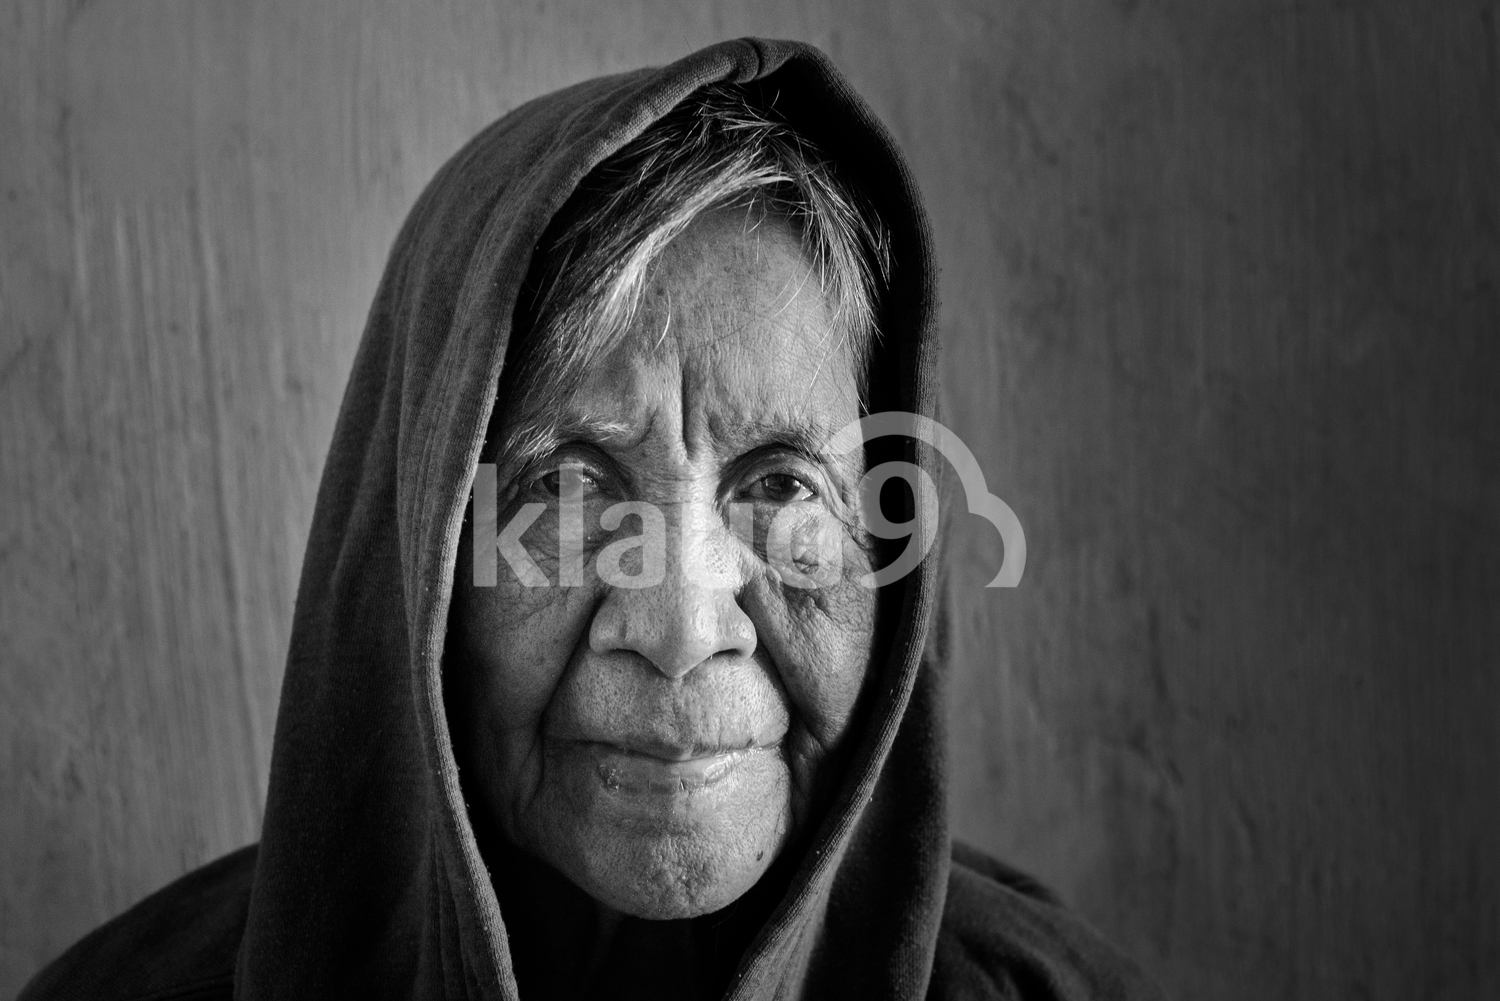 Grandma with a hood in black and white